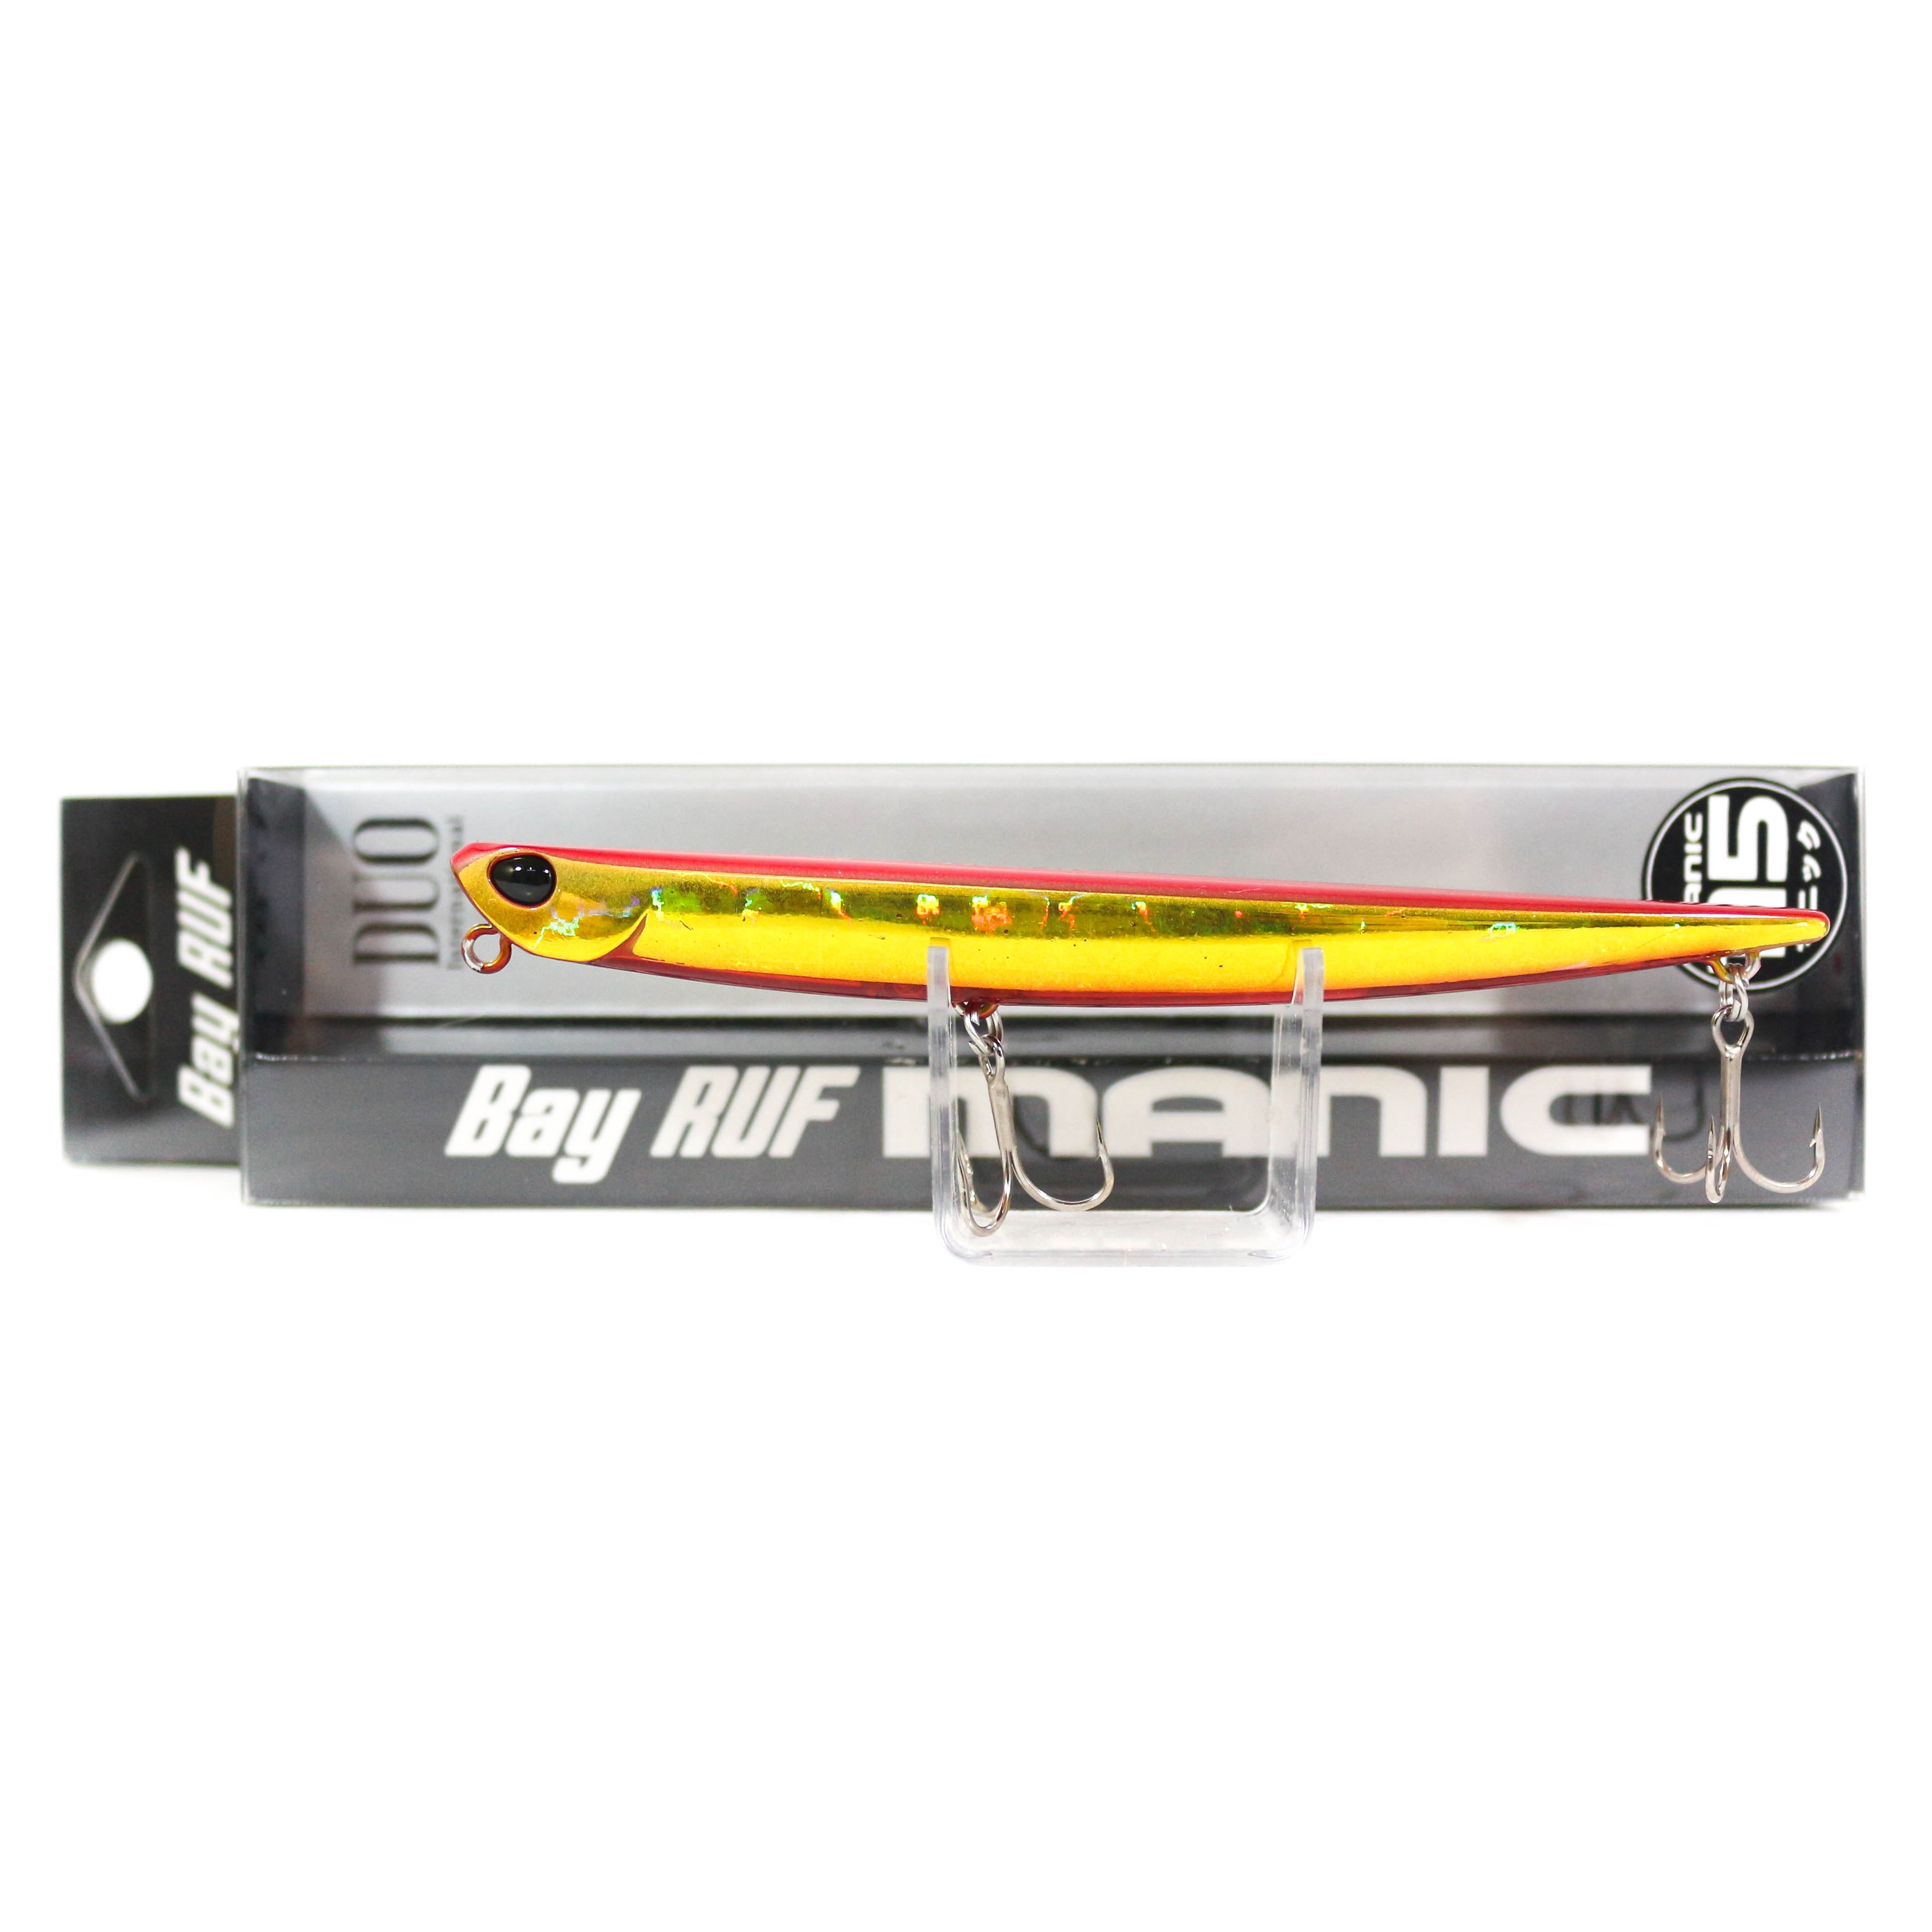 Duo Bay Ruf Manic 115 Pencil Sinking Lure GDN0251 (2202)